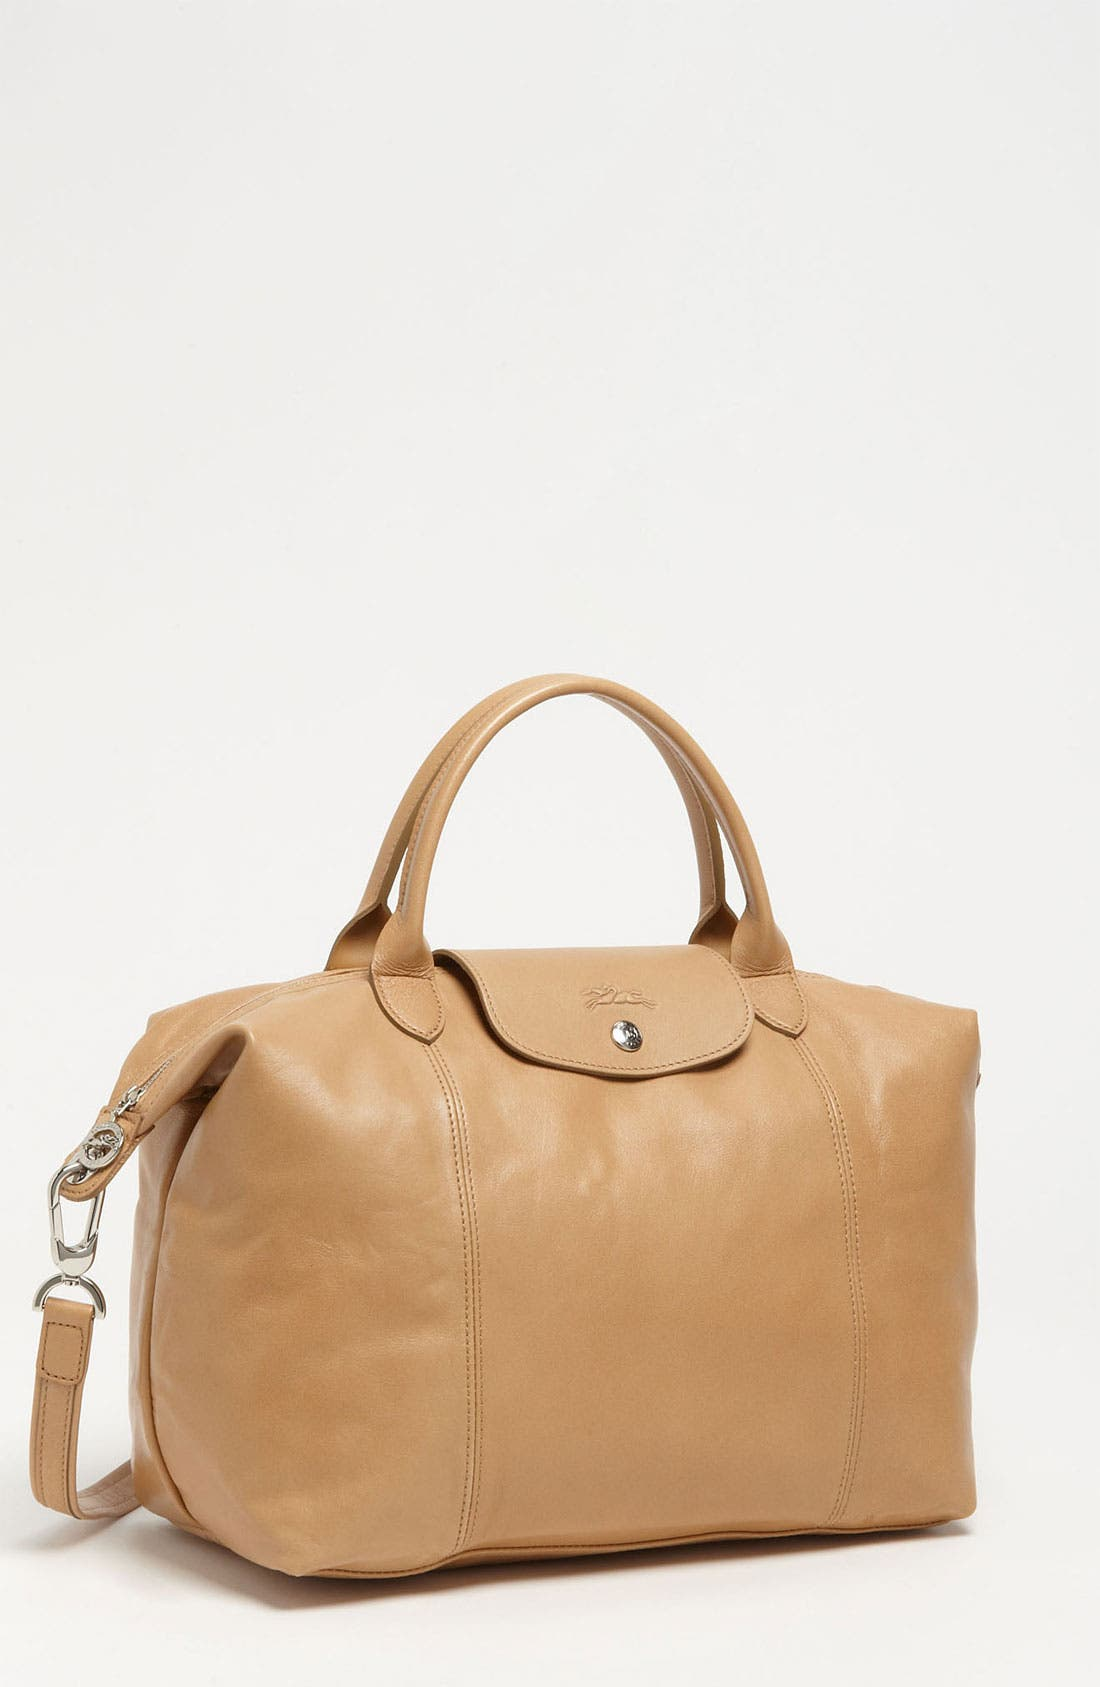 Medium 'Le Pliage Cuir' Leather Top Handle Tote,                             Main thumbnail 9, color,